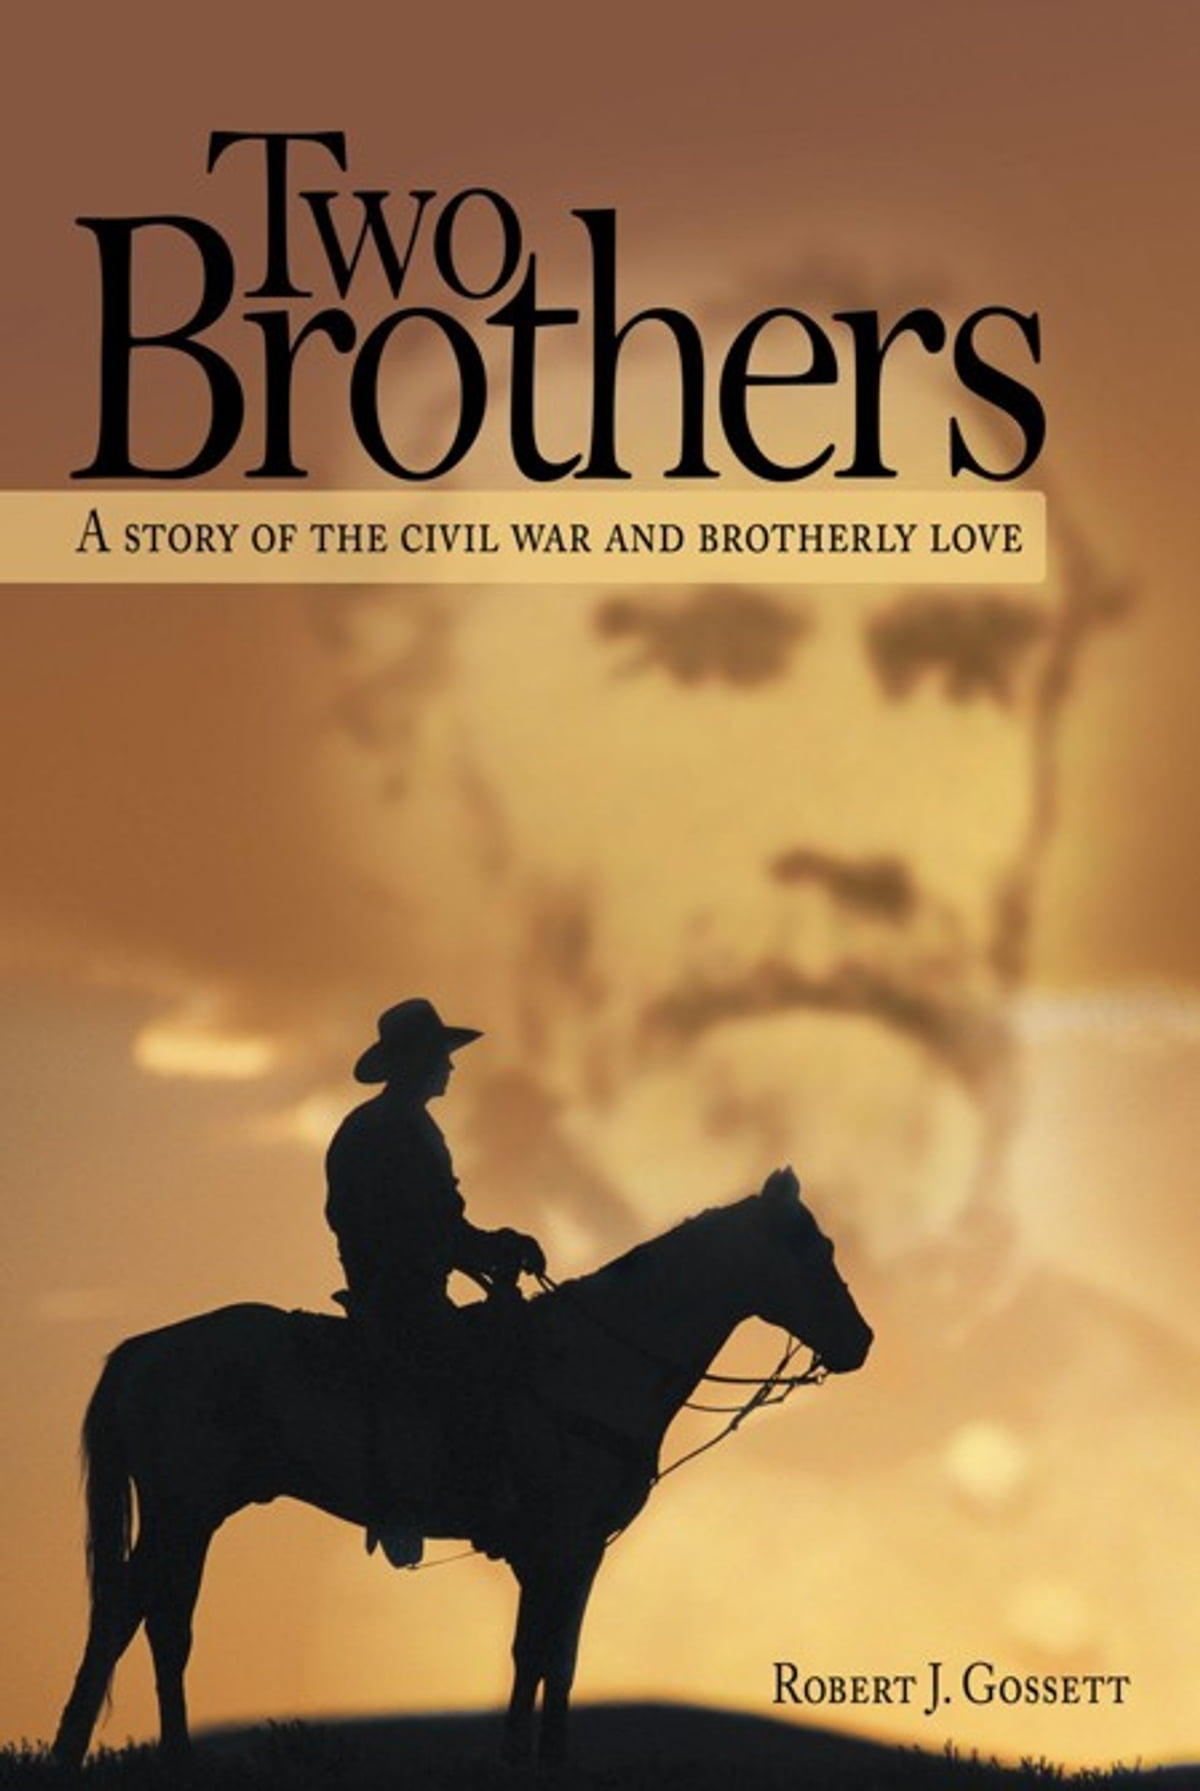 the two brothers story